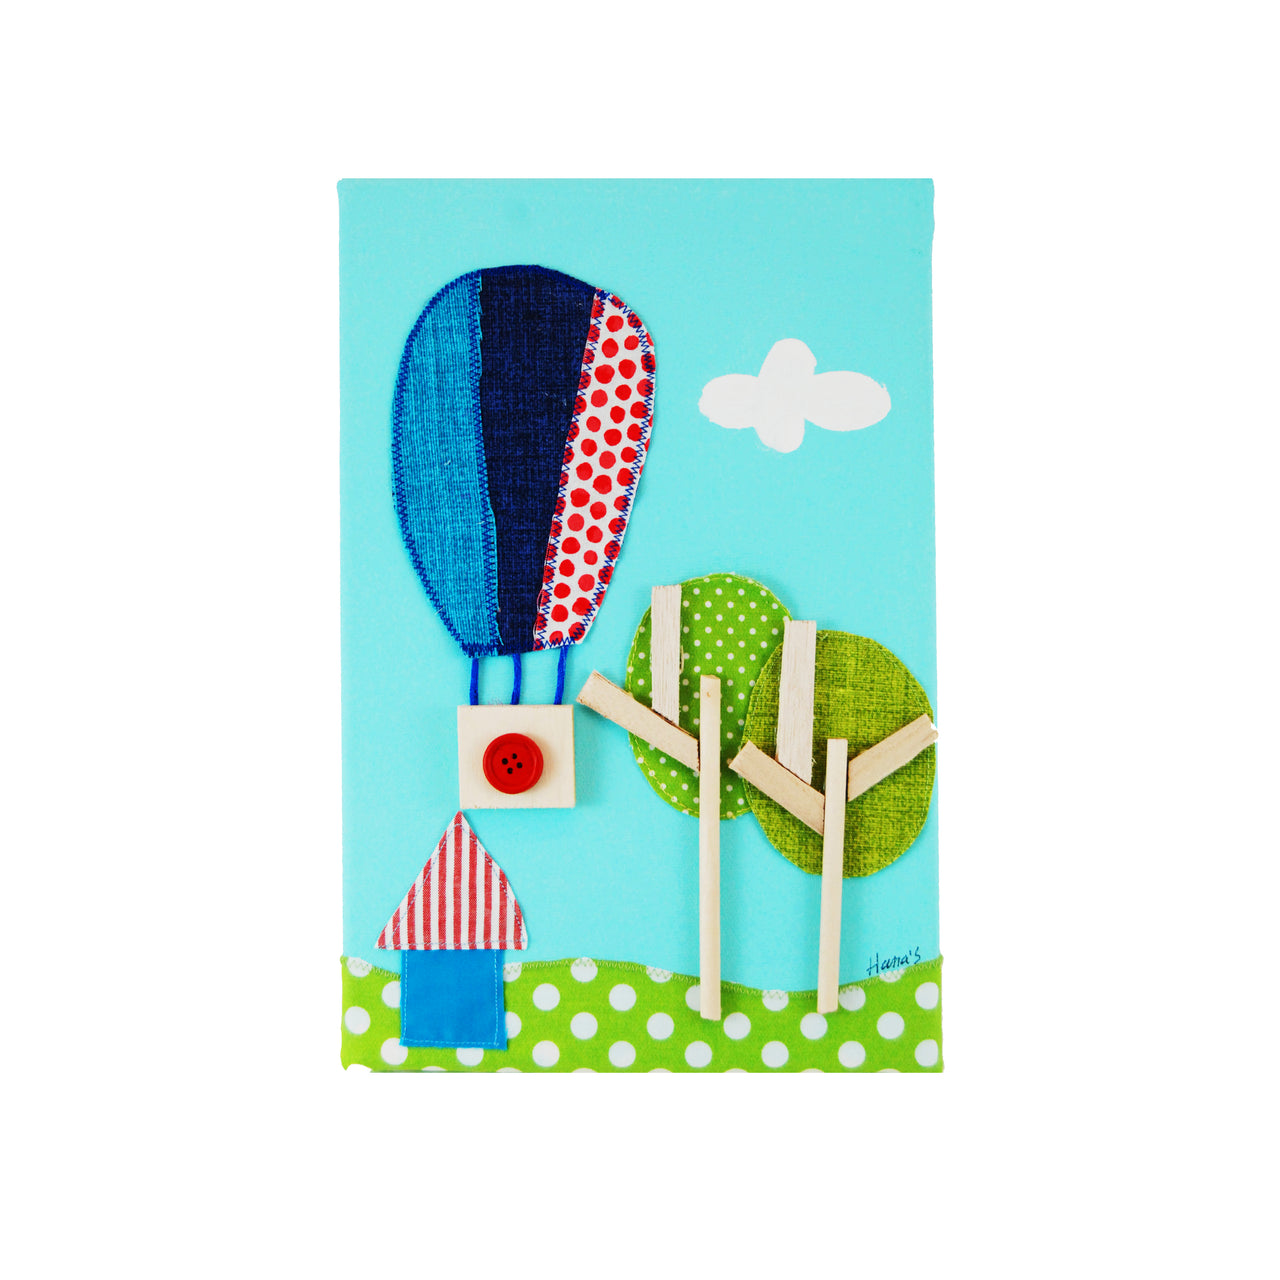 Hot Air Balloon Picture - Rooms for Rascals